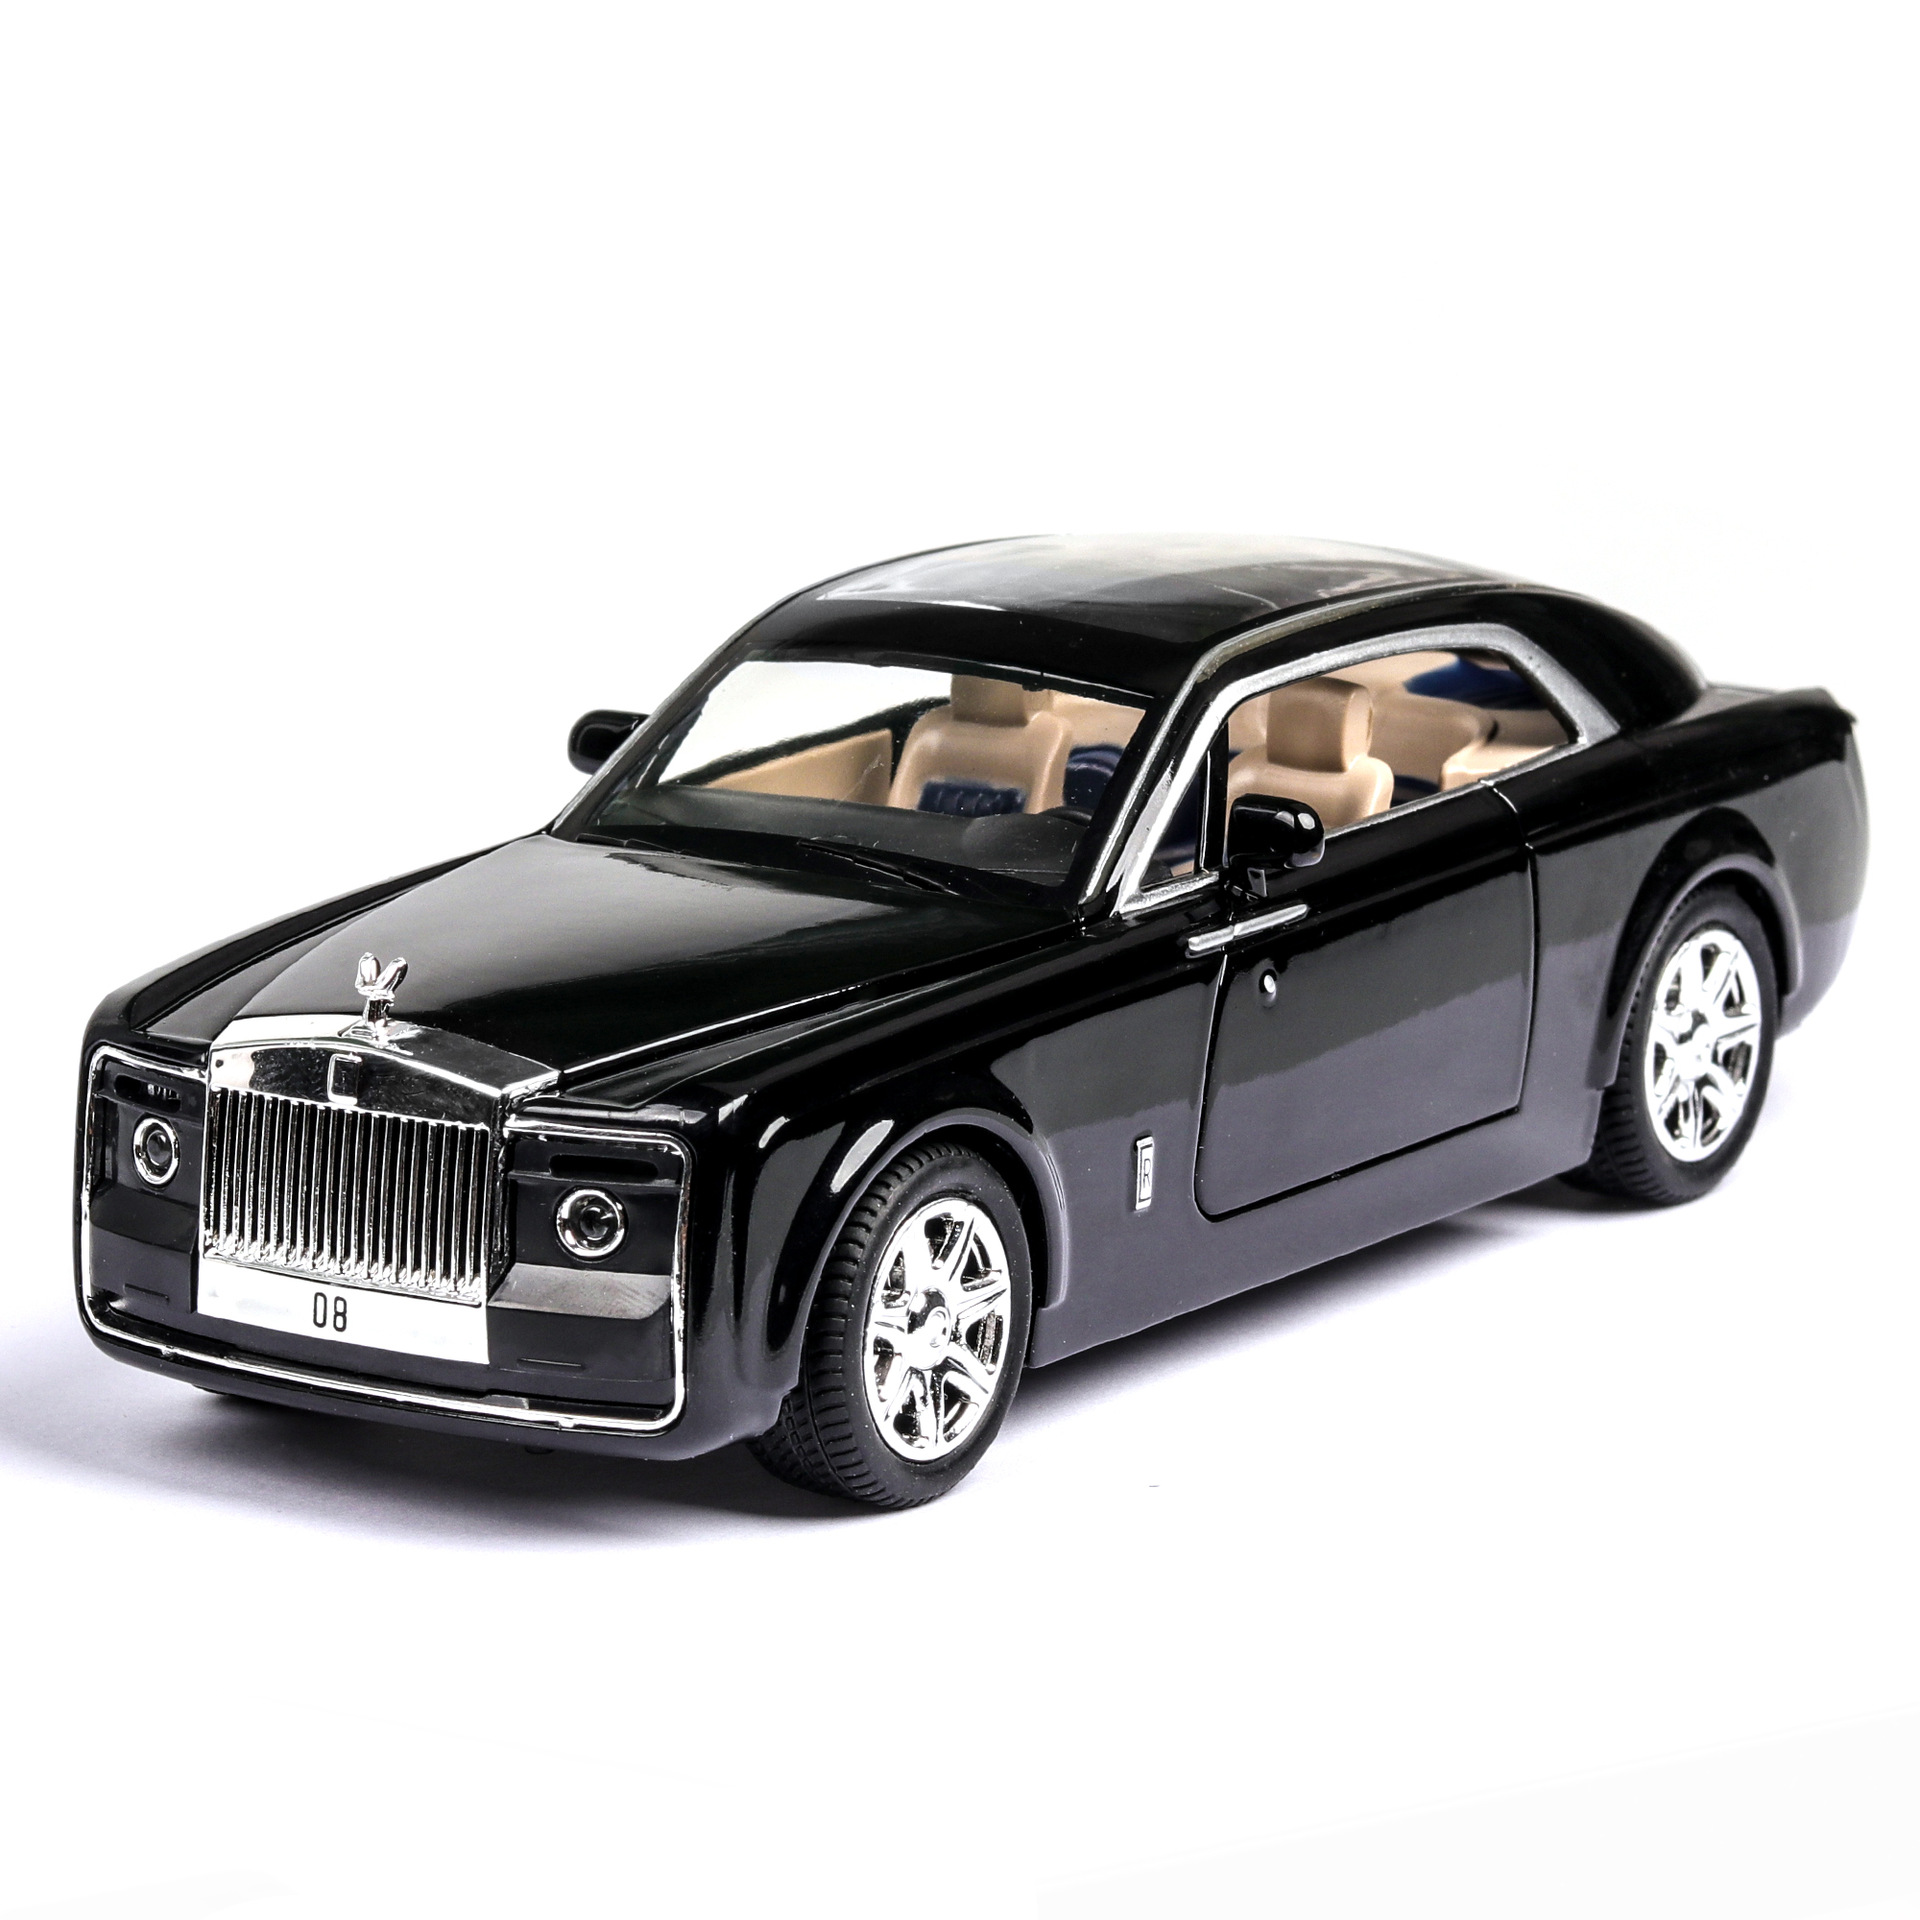 1:24 Diecast Metal Model Car Toy Wheels Alloy  Vehicle Rolls Royce Sound And Light Pull Back Car Boy Kid Toys Christmas Gift